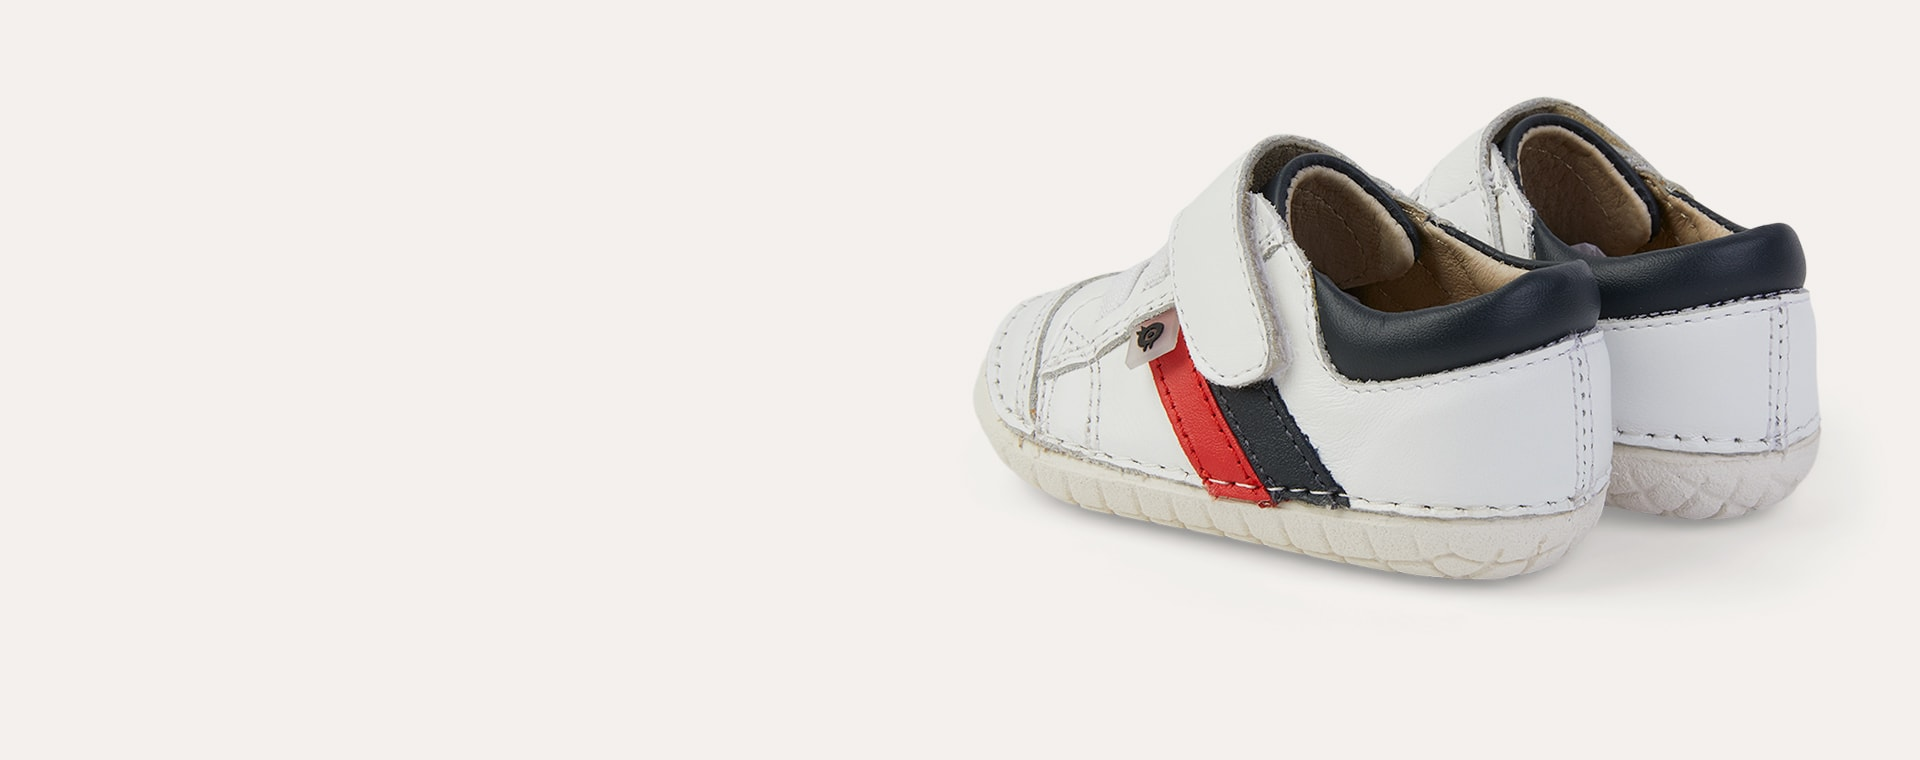 Snow/ Navy/ Bright Red old soles Shield Pave